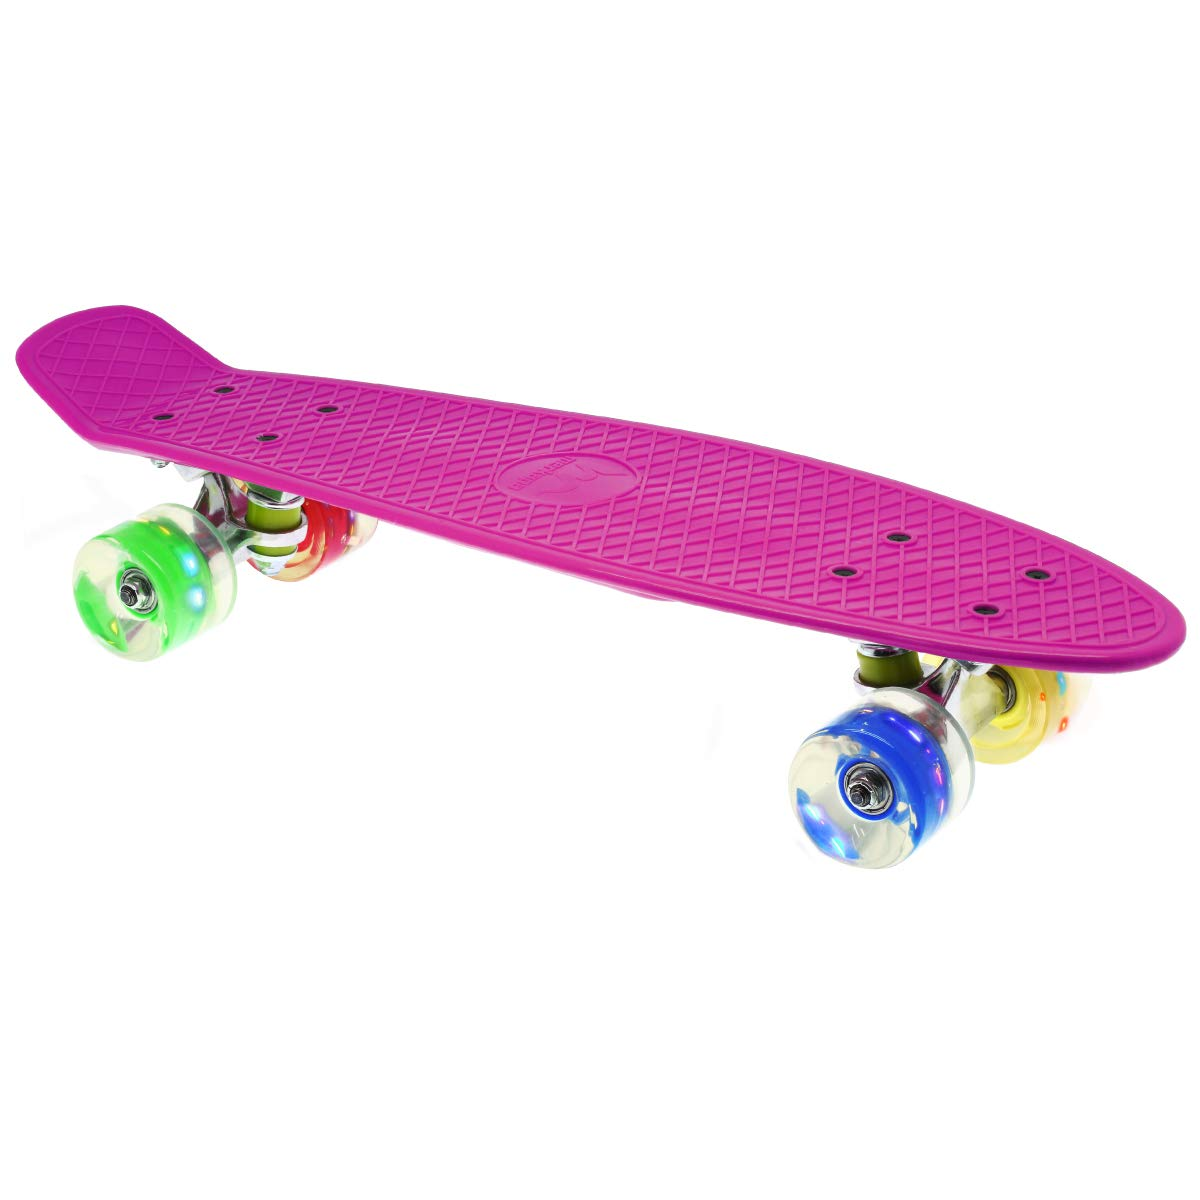 Merkapa 22'' Complete Skateboard with Colorful LED Light Up Wheels for Beginners (Pink)